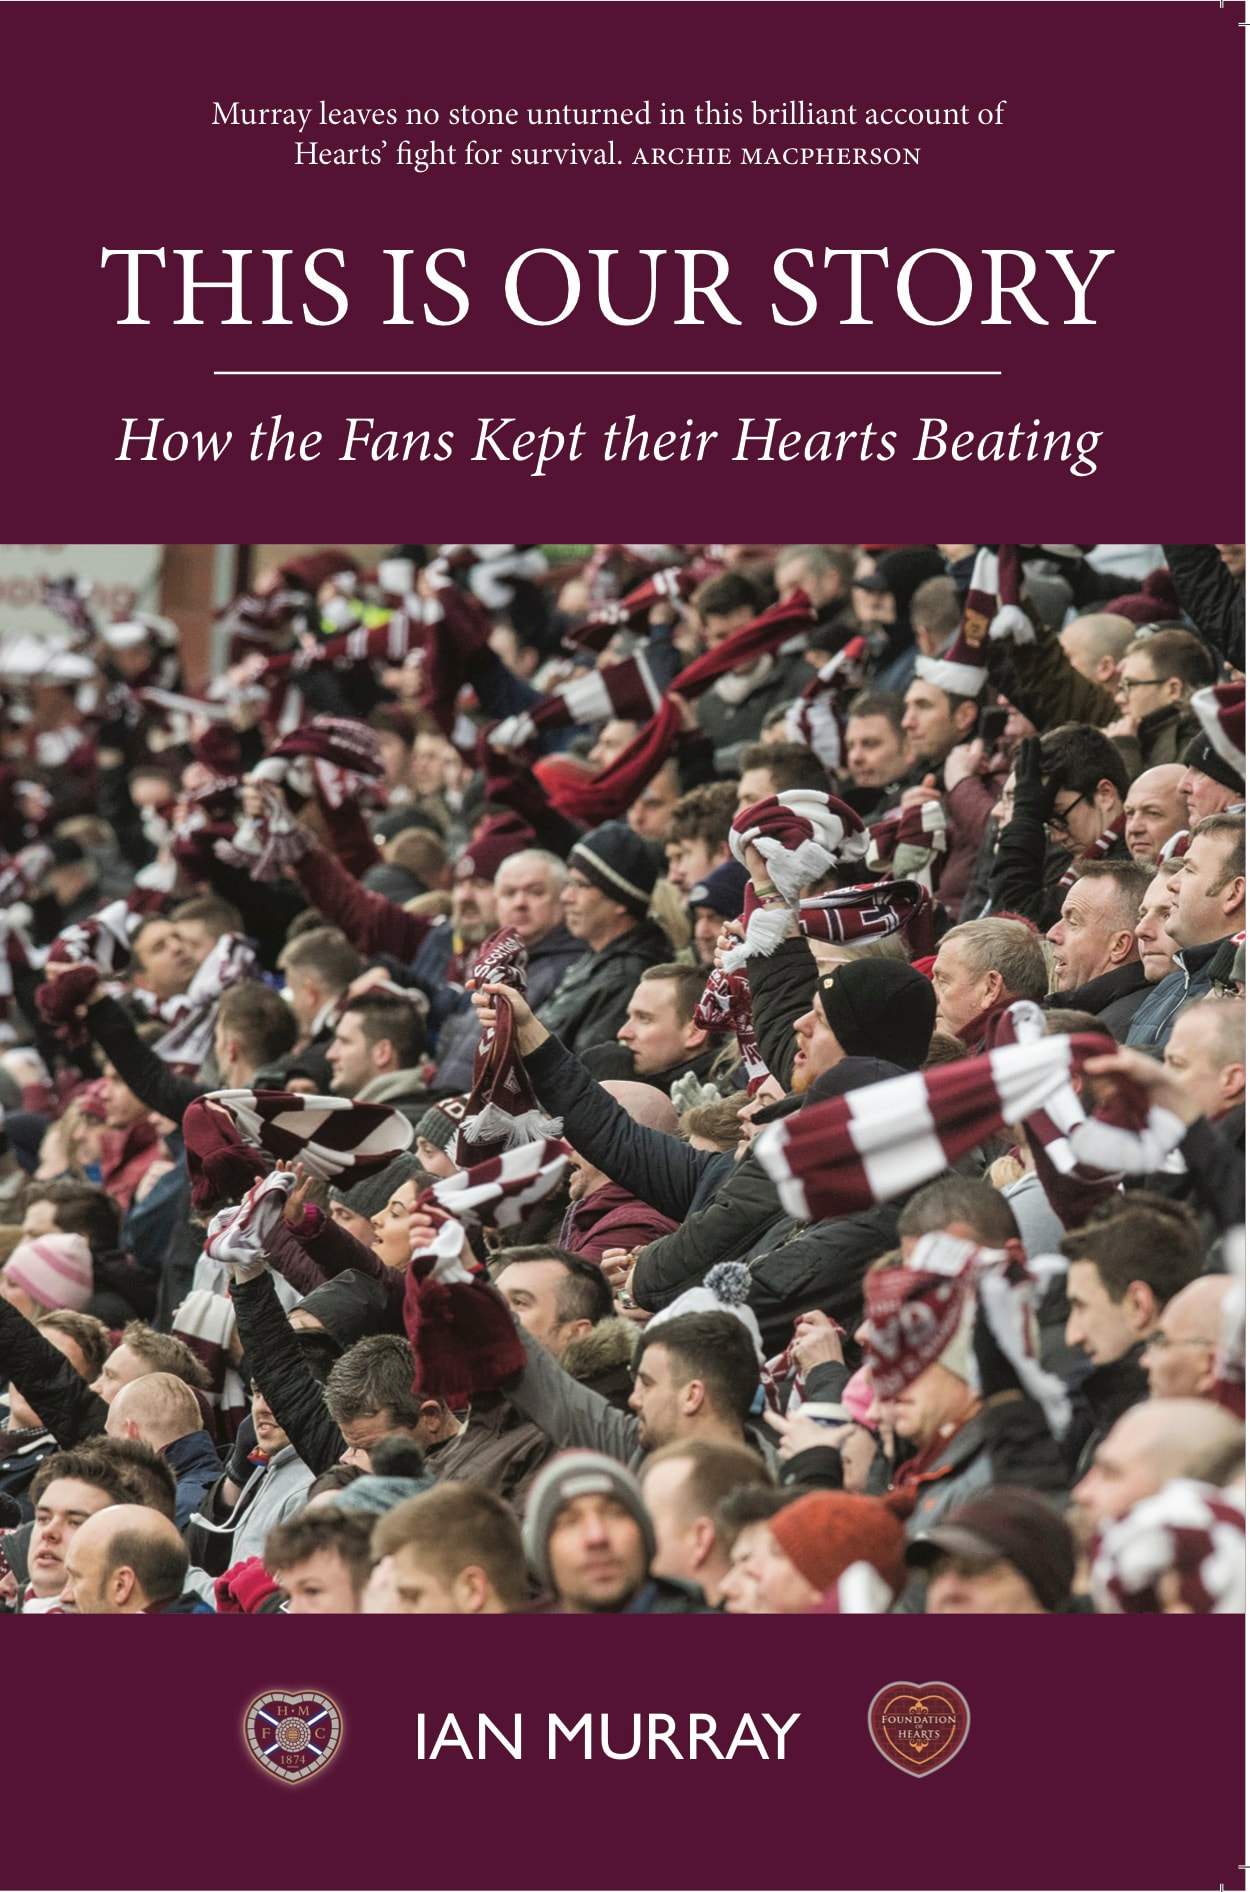 This is our story: How the fans kept their Hearts beating (PAPERBACK)